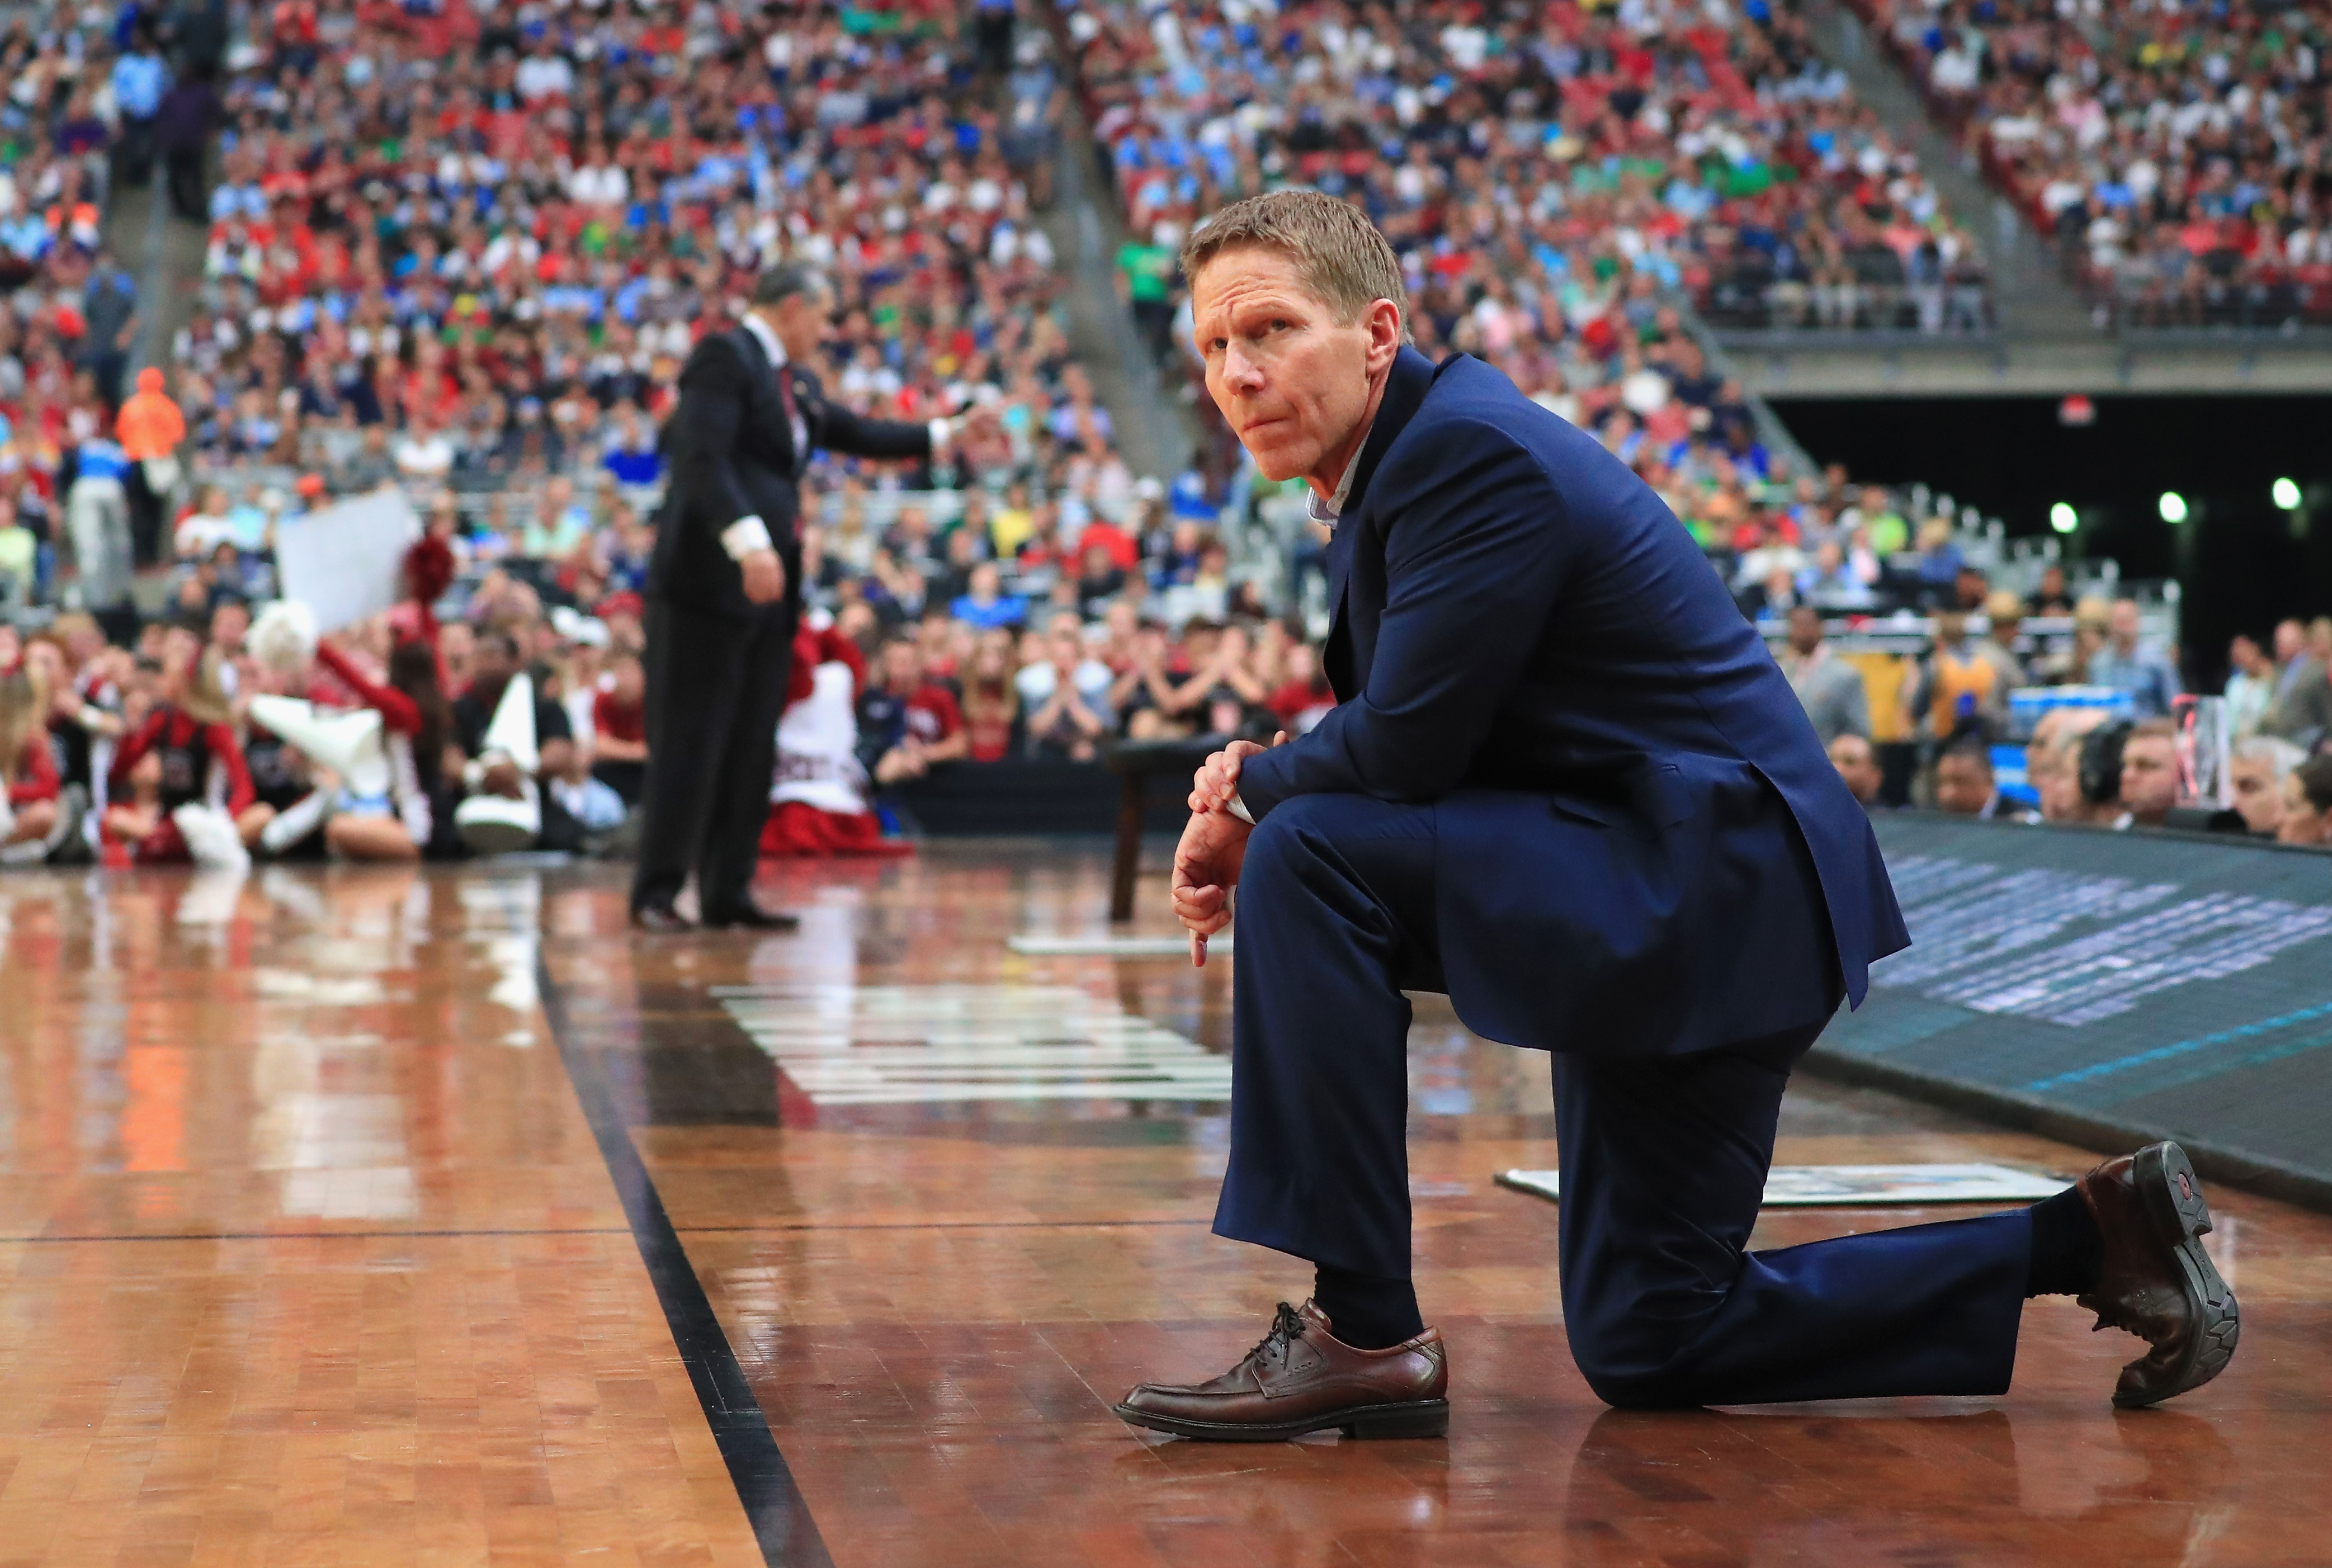 Mark Few has won more than 500 games as coach of Gonzaga, which is one game away from the NCAA championship. (Getty Images)